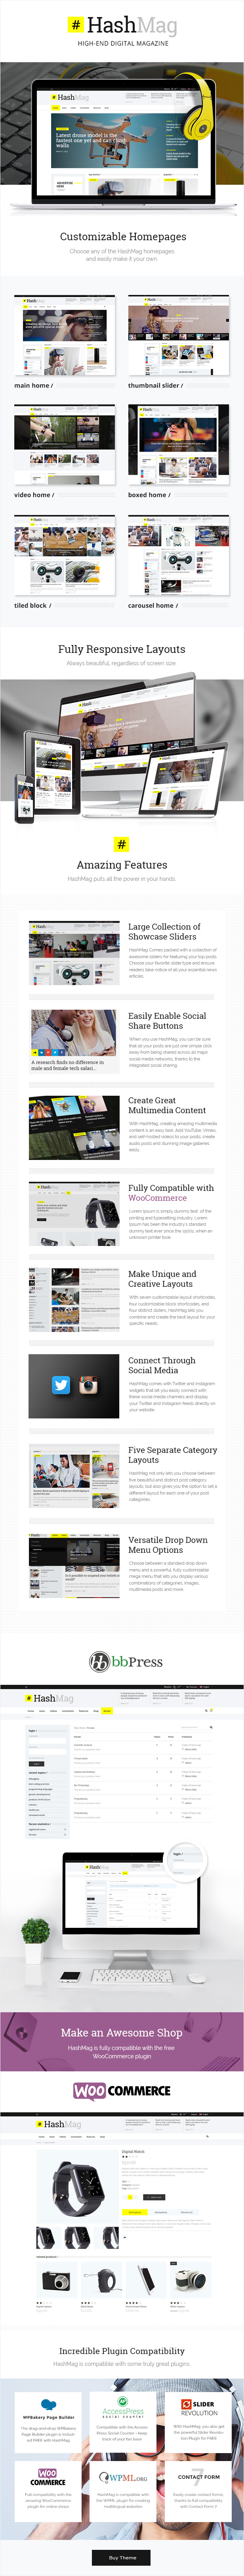 HashMag - Magazine & News Theme - 1